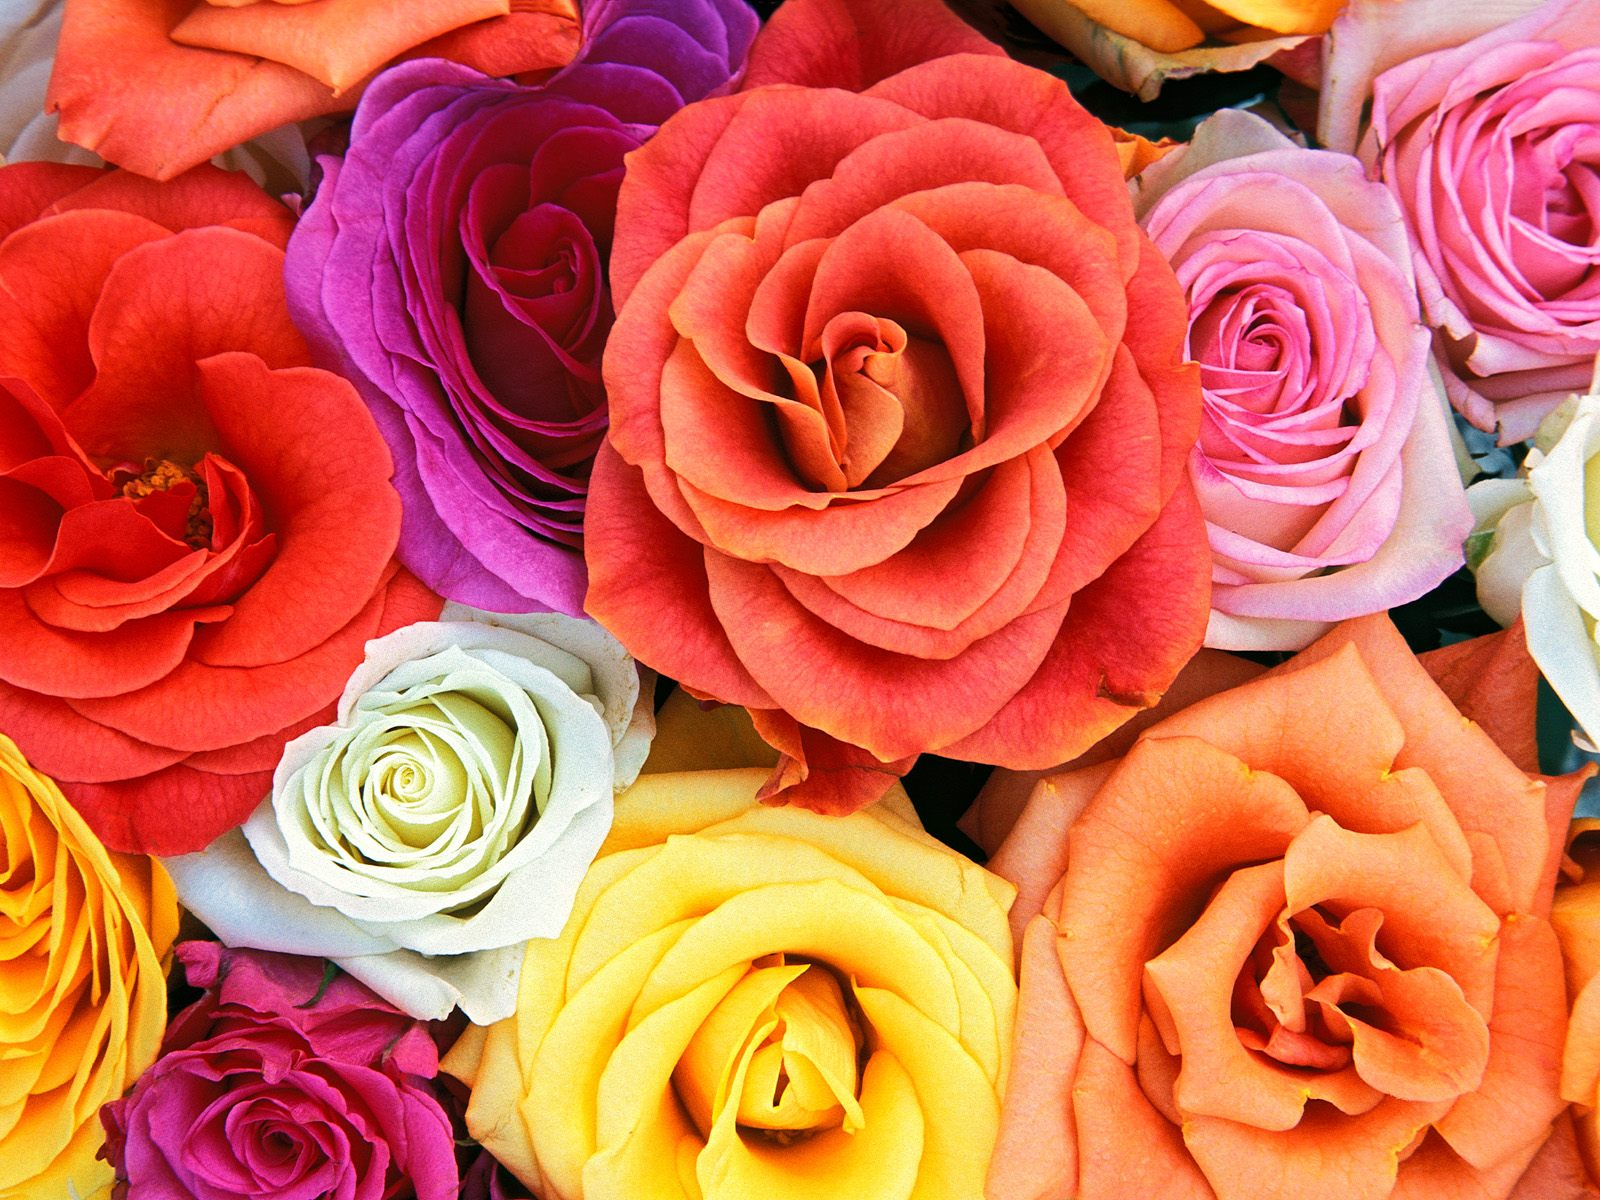 http://1.bp.blogspot.com/-D-LgwMTqn_8/TsQjhzu9aGI/AAAAAAAAEkQ/KFfisLFKMAo/s1600/flower-wallpaper-for-windows-xp.jpg